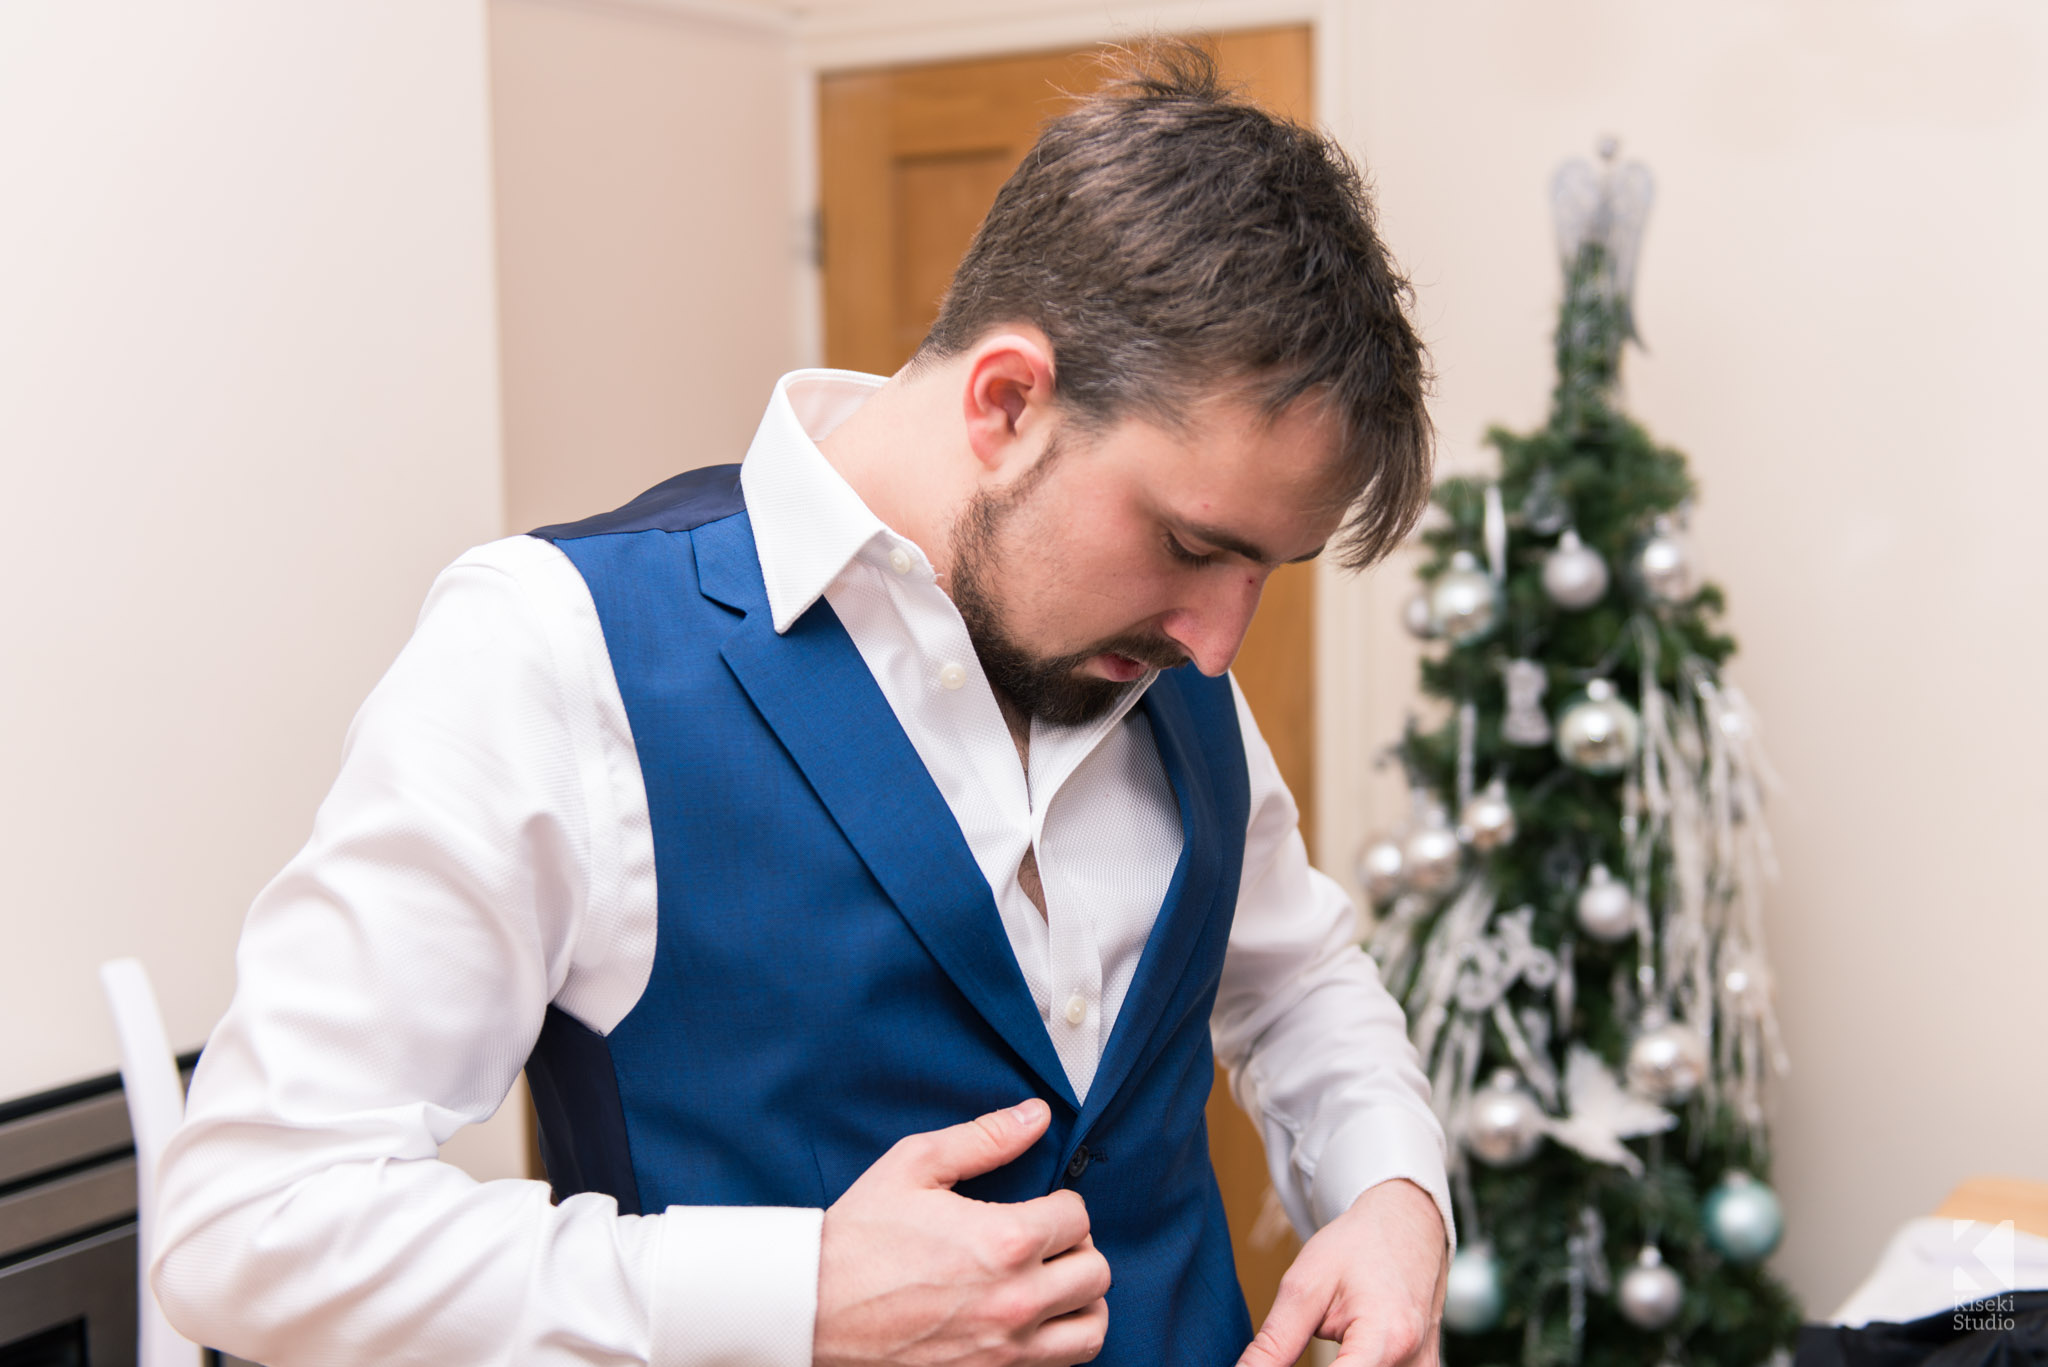 Groom preparing his suit